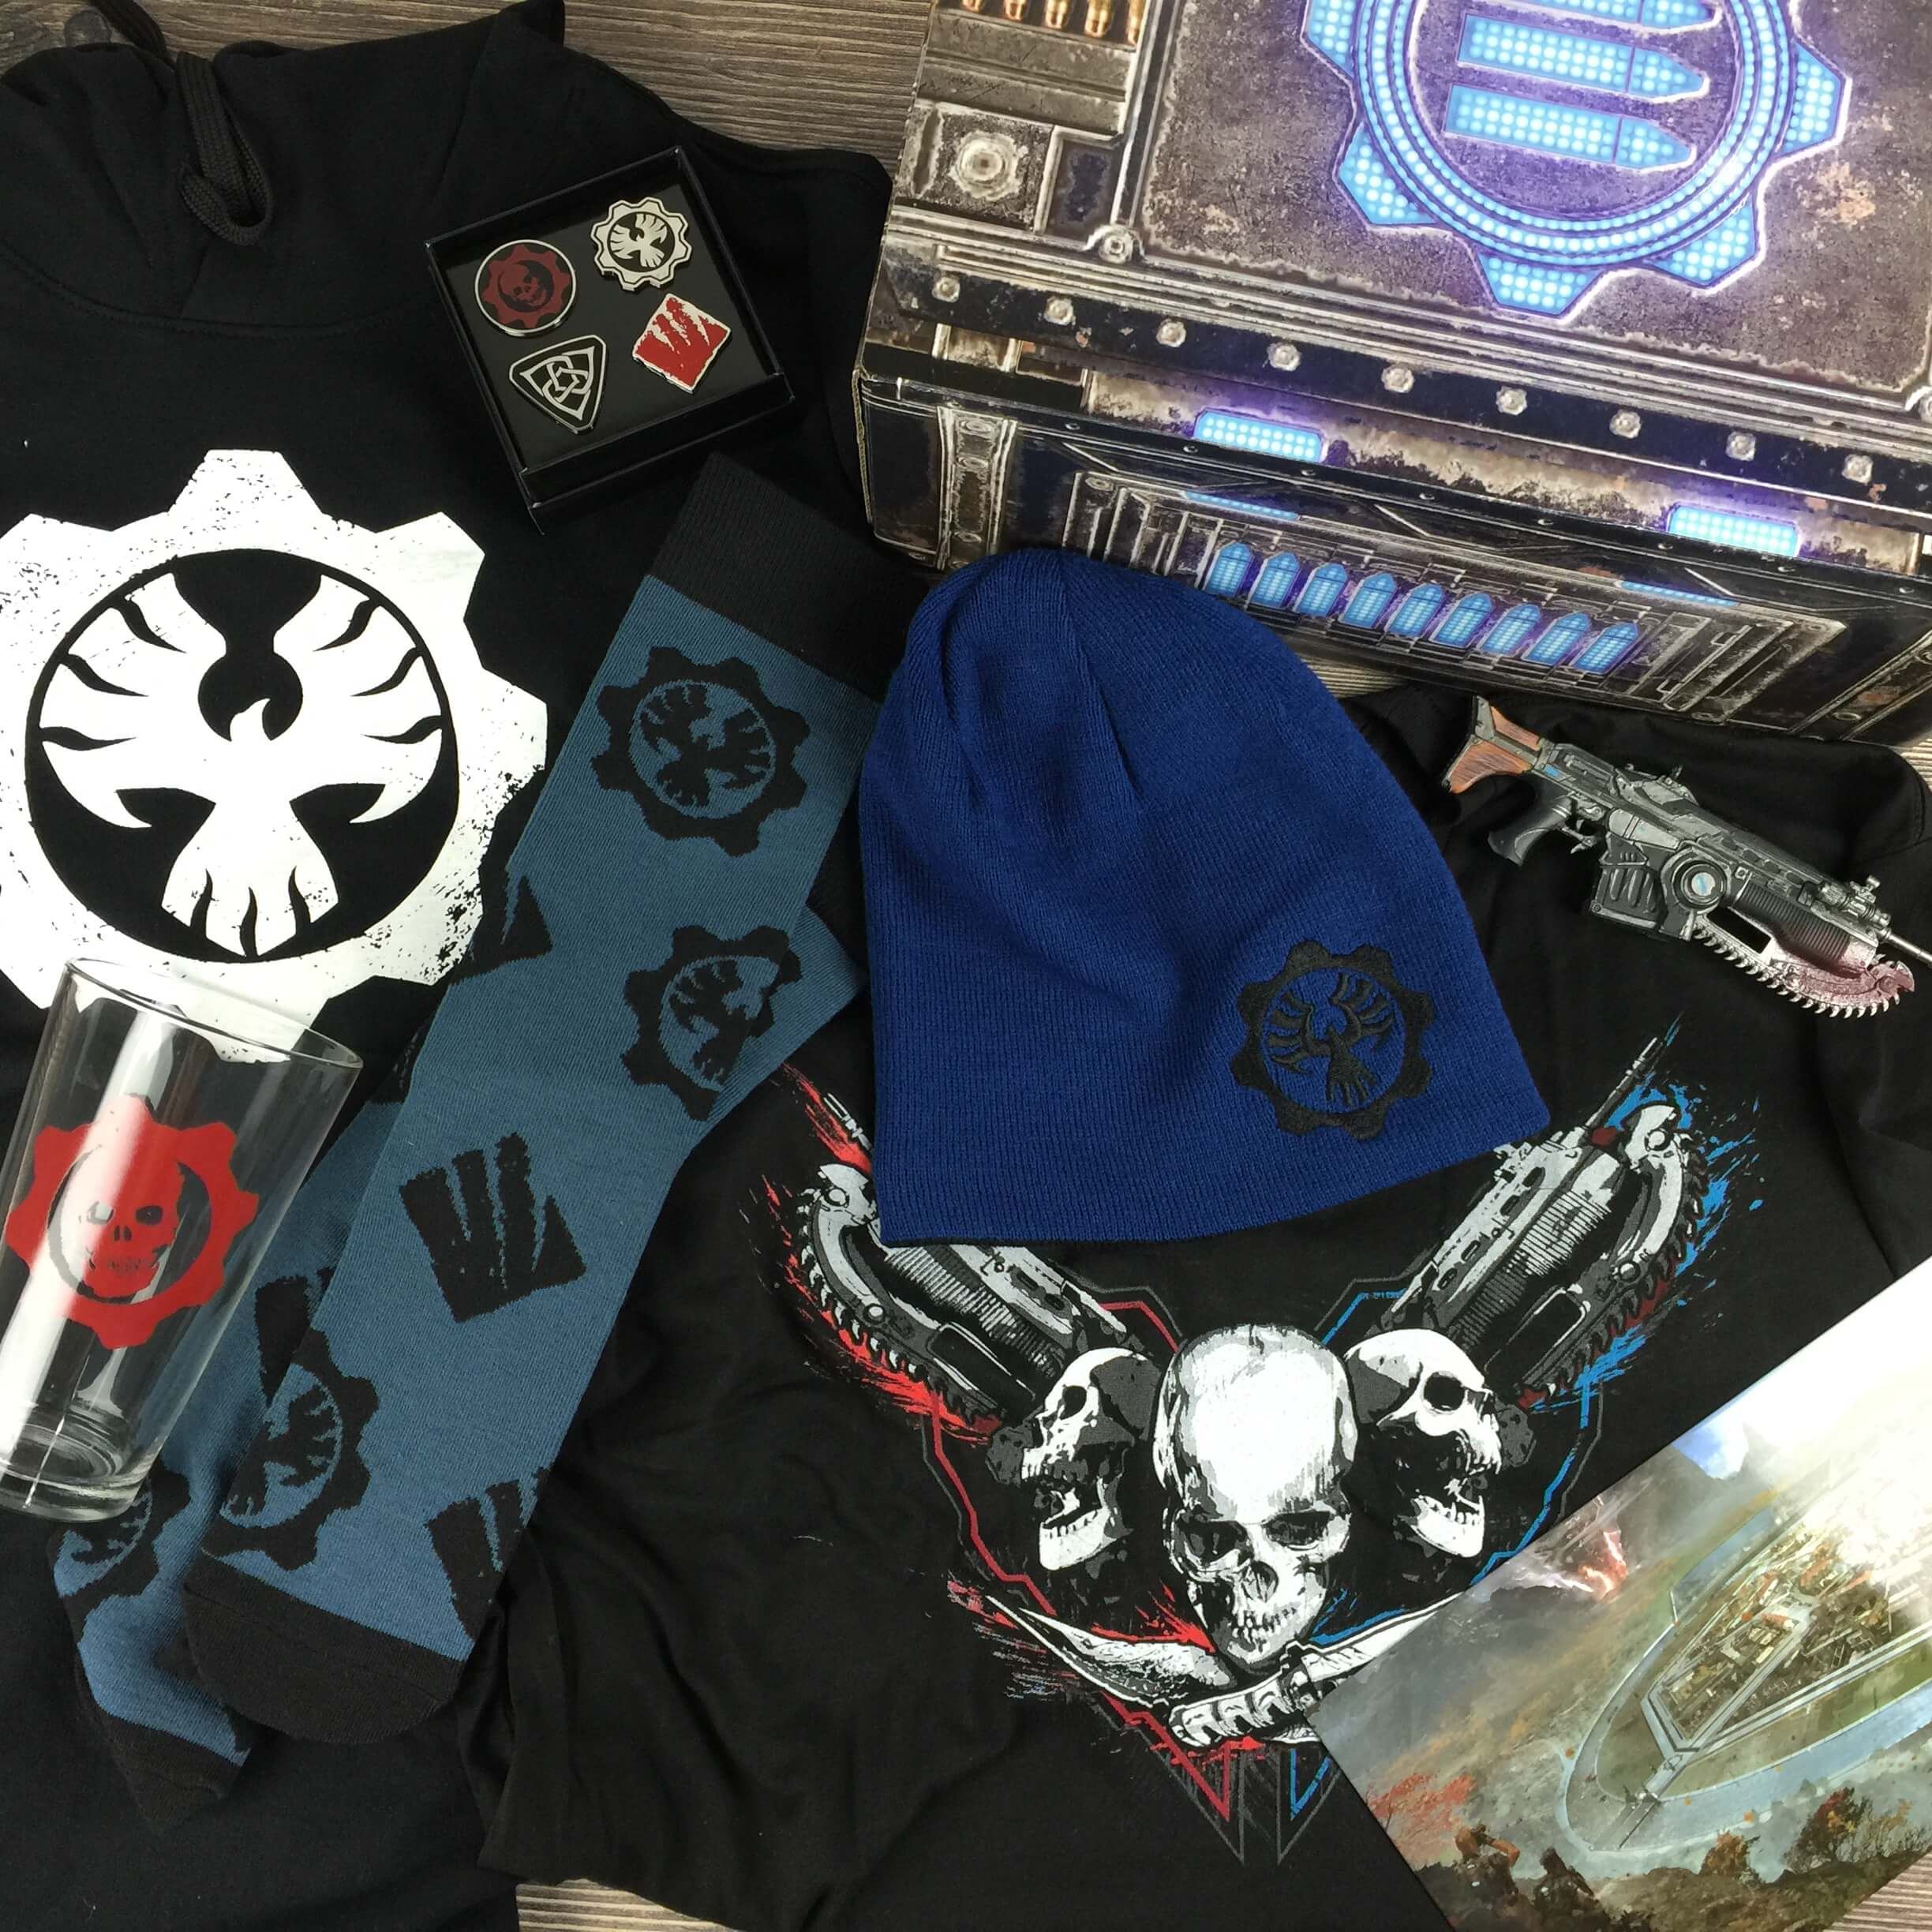 Loot Crate GEARS OF WAR 4 Limited Edition Crate Review